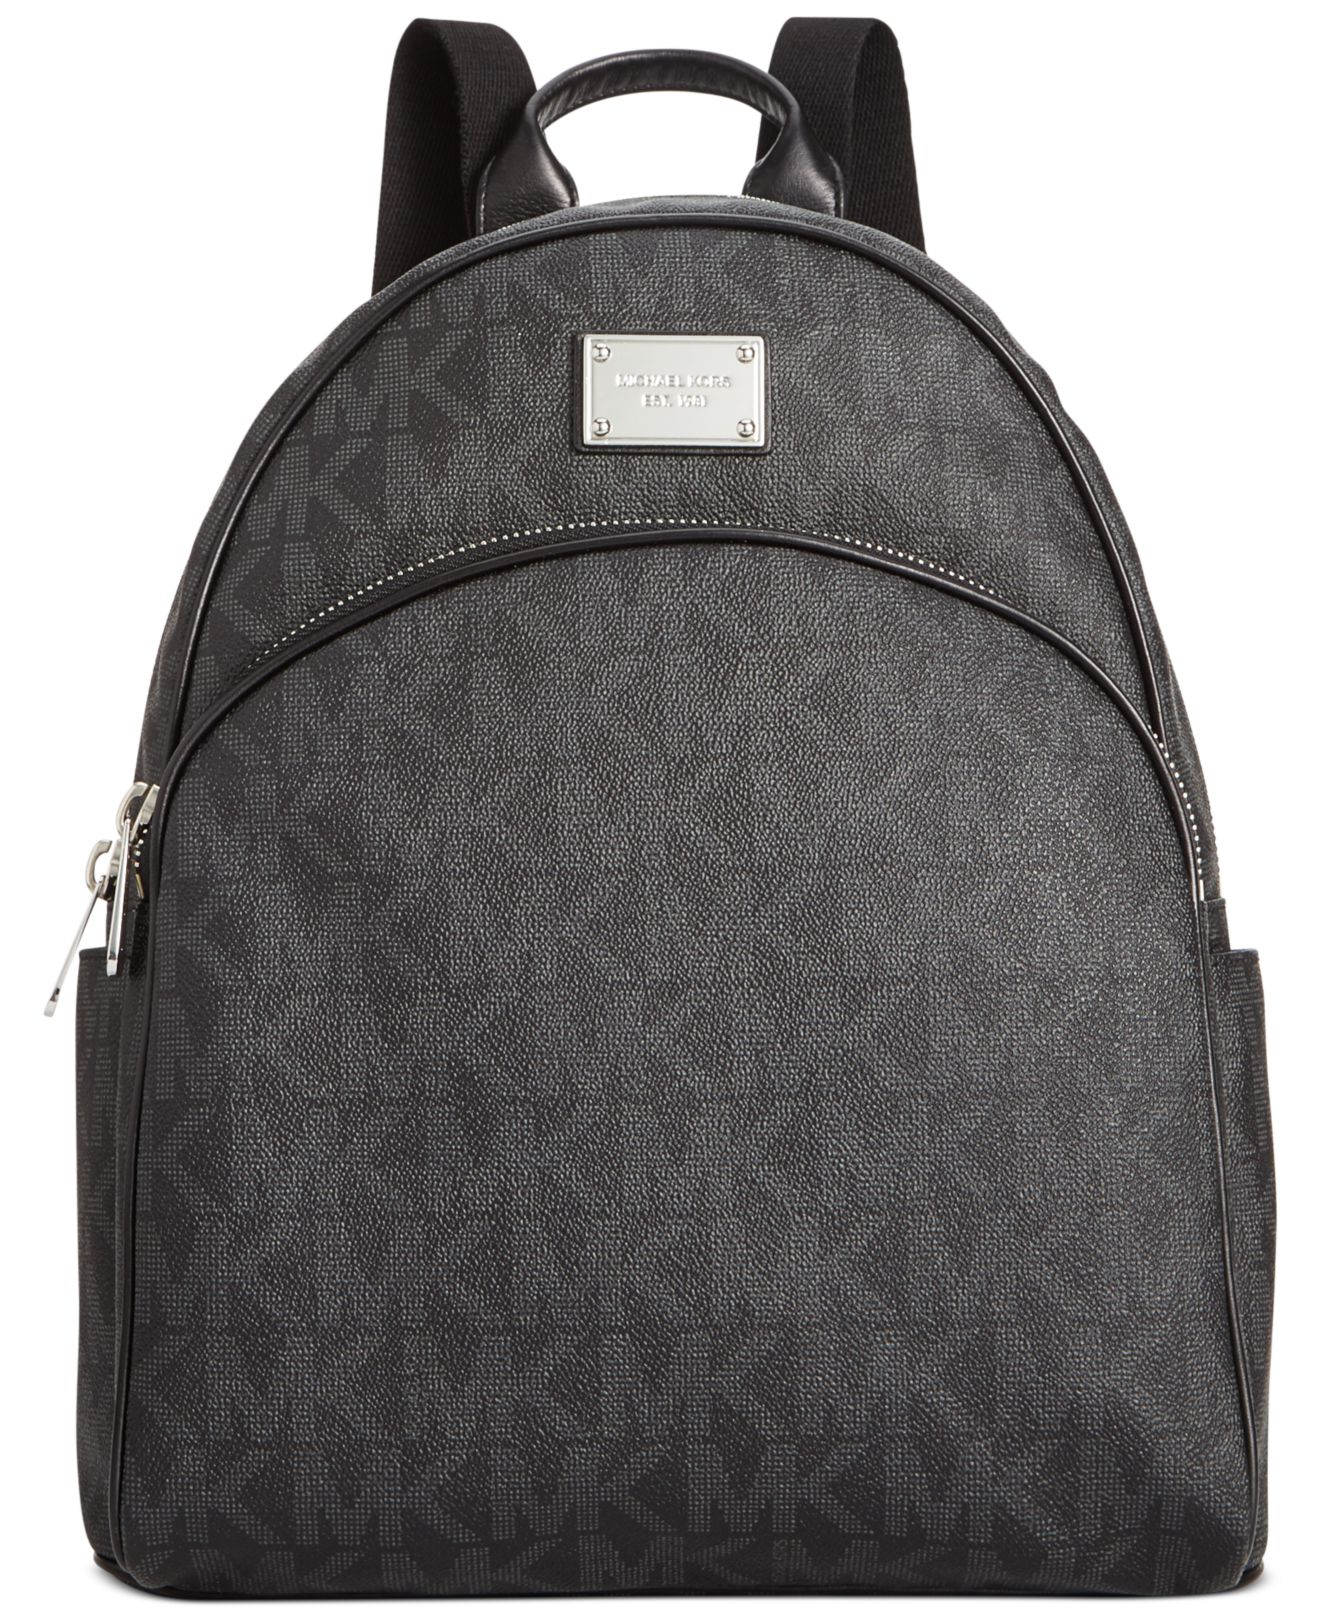 7ee68b1f4954 ... low cost lyst michael kors michael signature large backpack in black  4f2fd 92d85